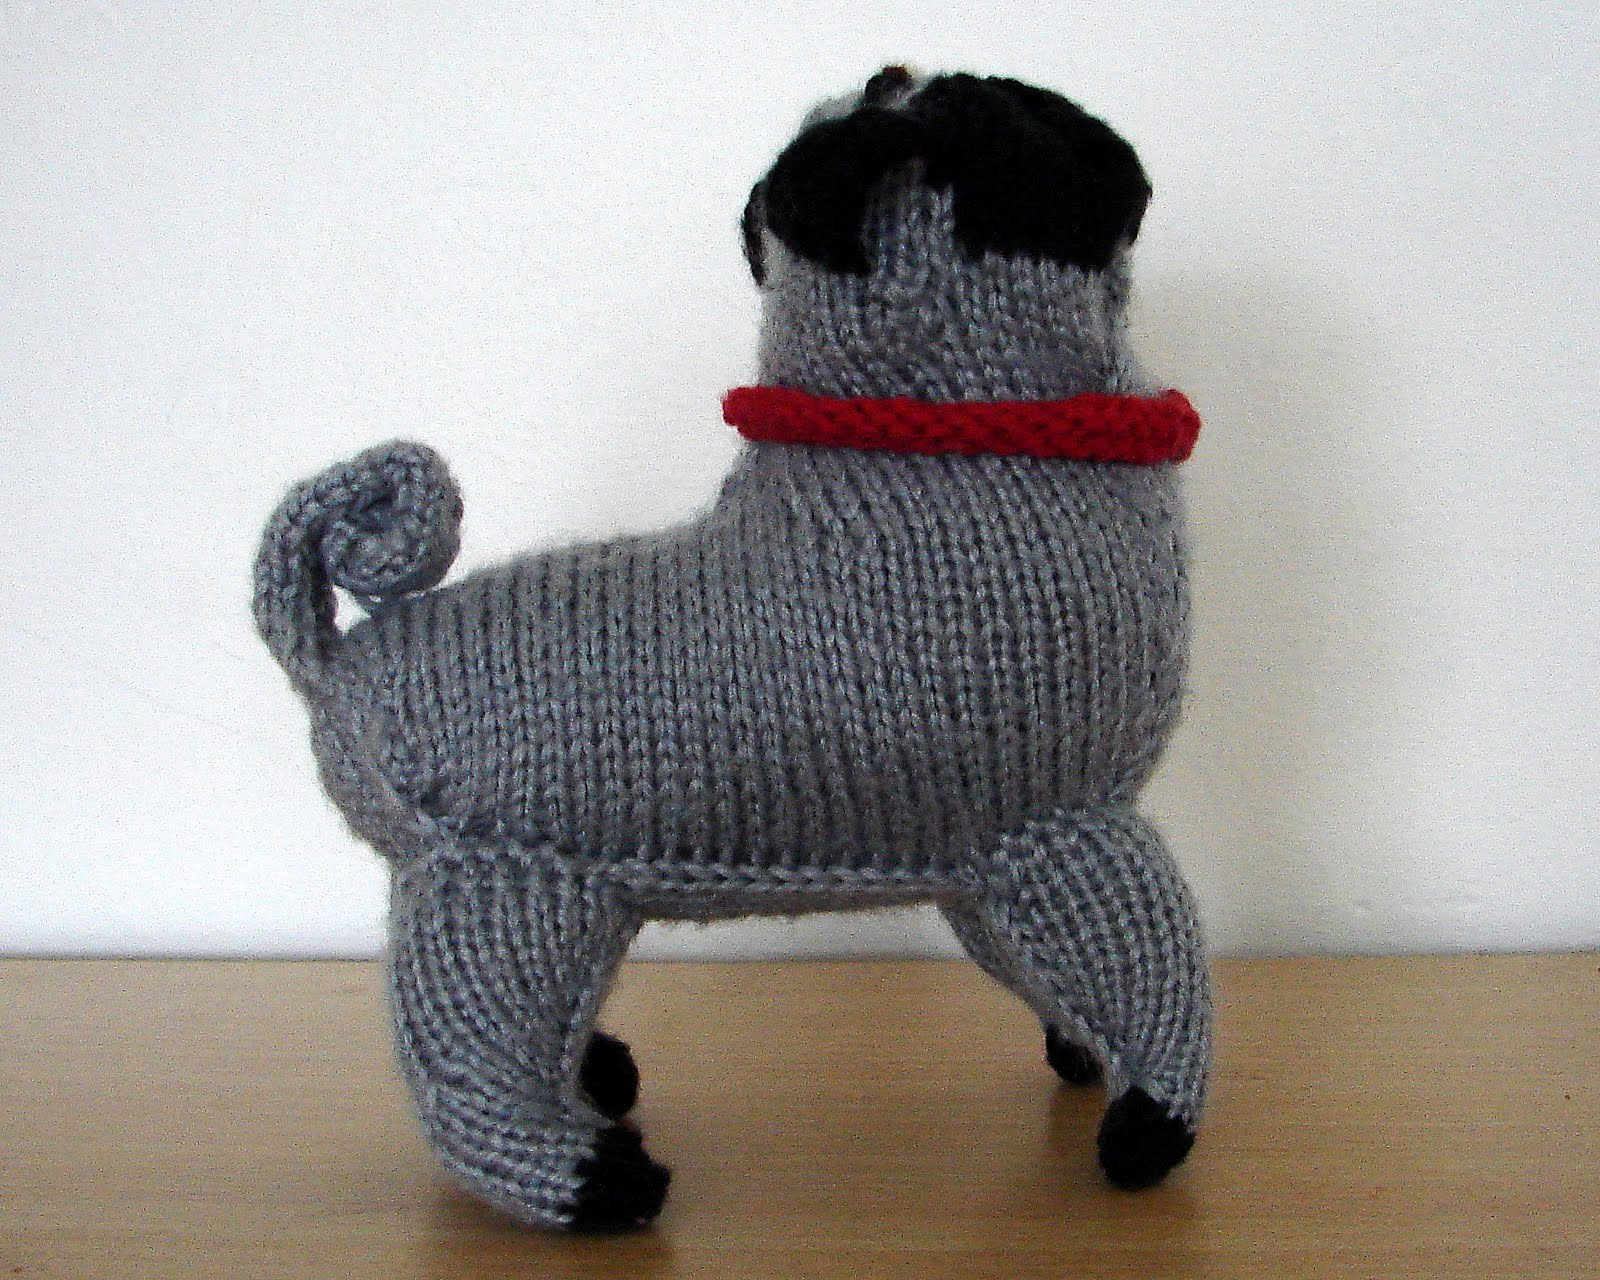 Knitting Pattern Dog Coat Pug : Ferbys Corner Knitting: Knitted pug dog